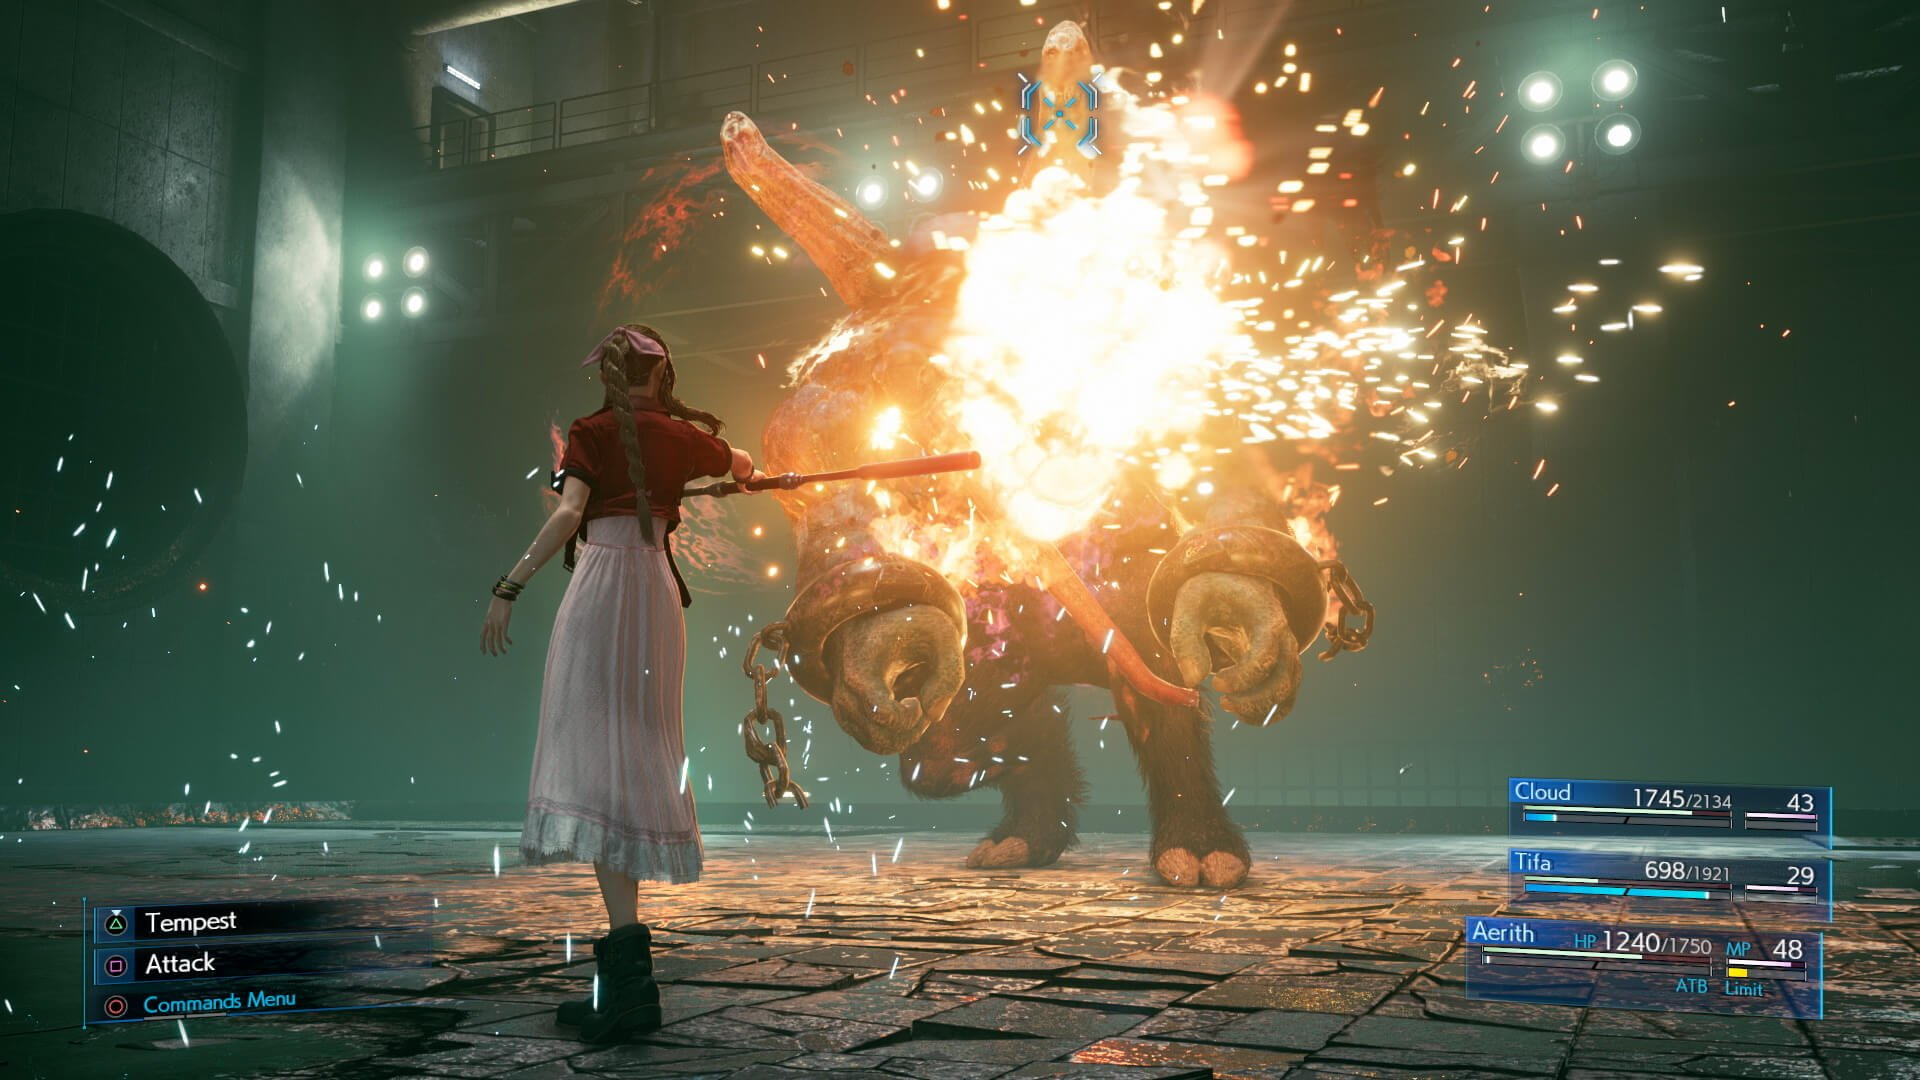 How to adjust the difficulty in the Final Fantasy 7 Remake